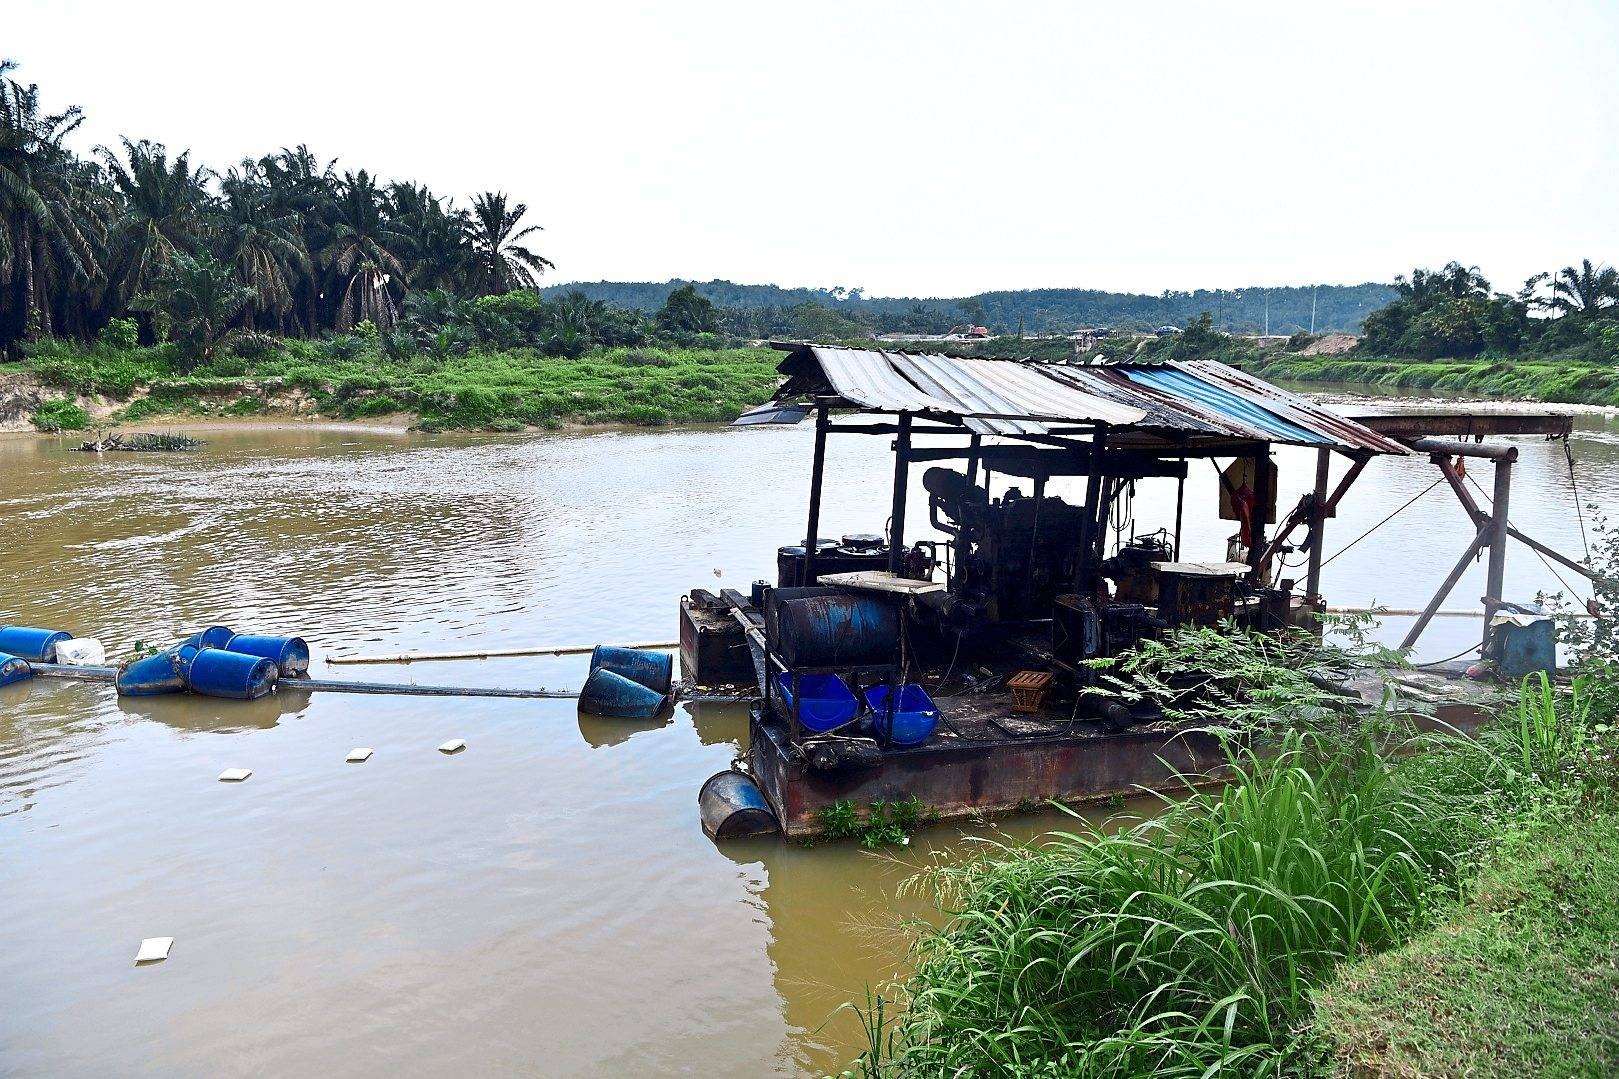 Diesel contamination of Sungai Selangor resulted in the shutdown of the water treatment plant catering to 1.1 million households in Klang Valley in July. — Filepic